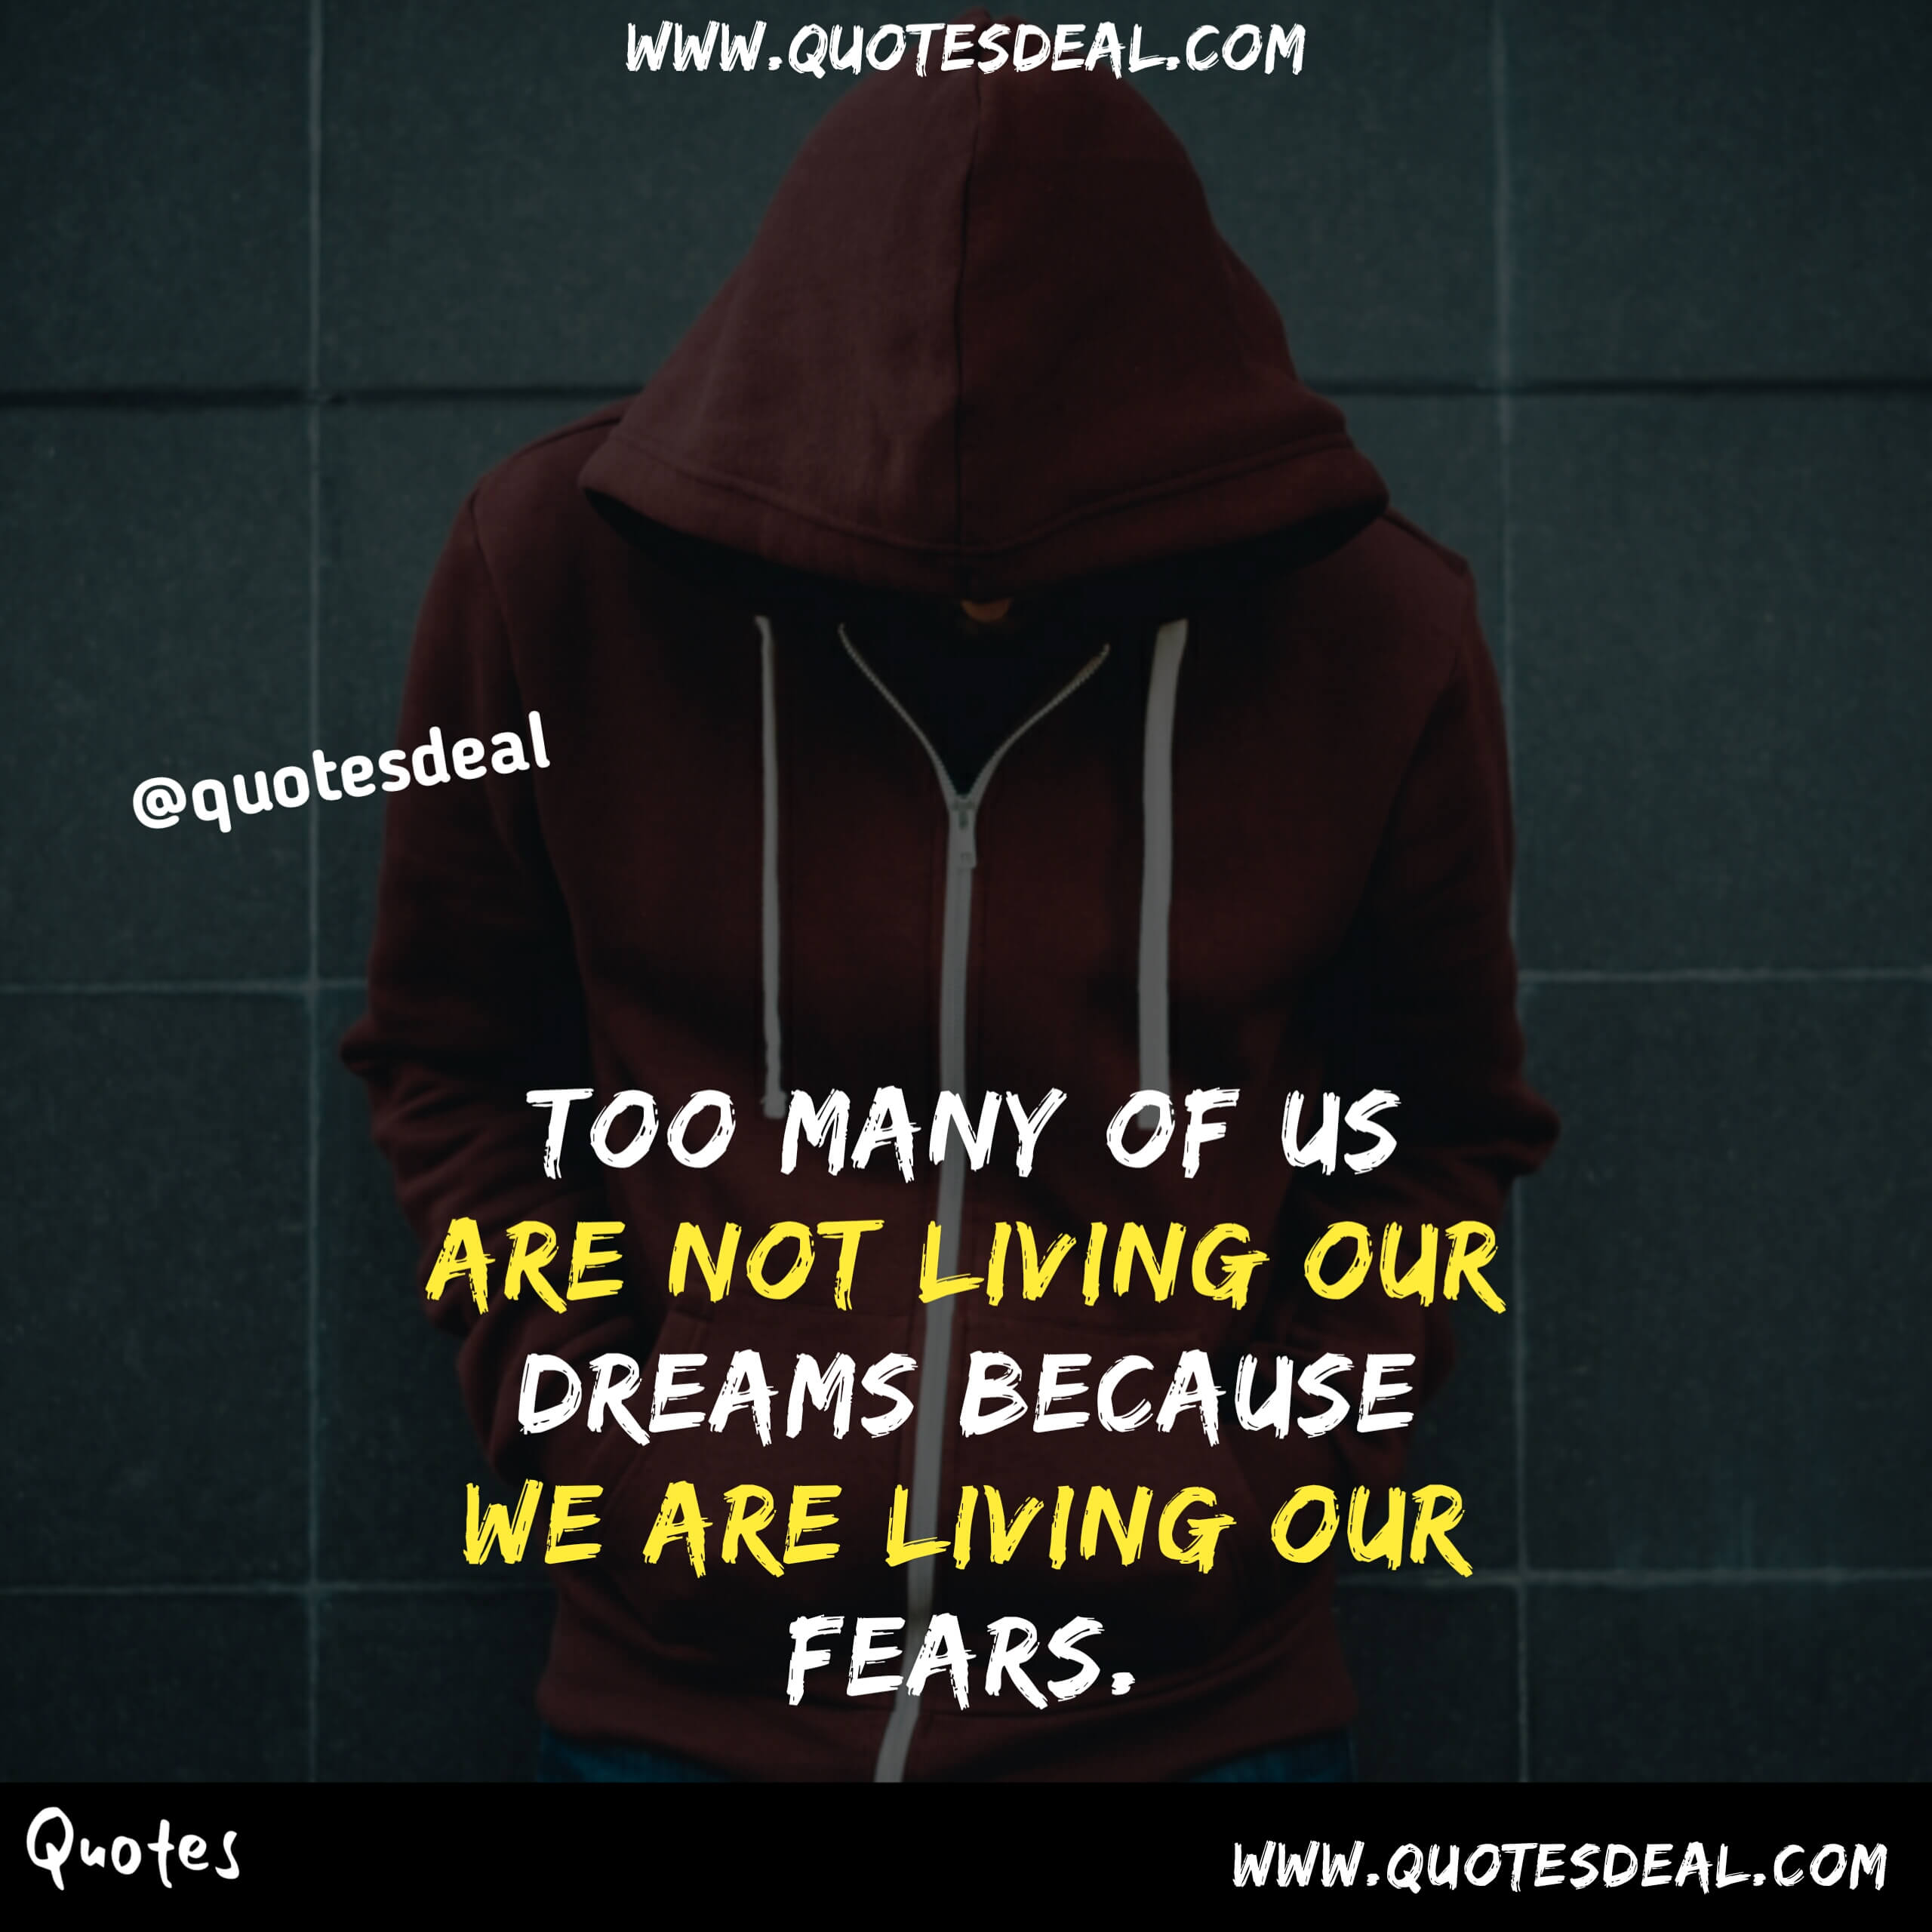 we are living our fears